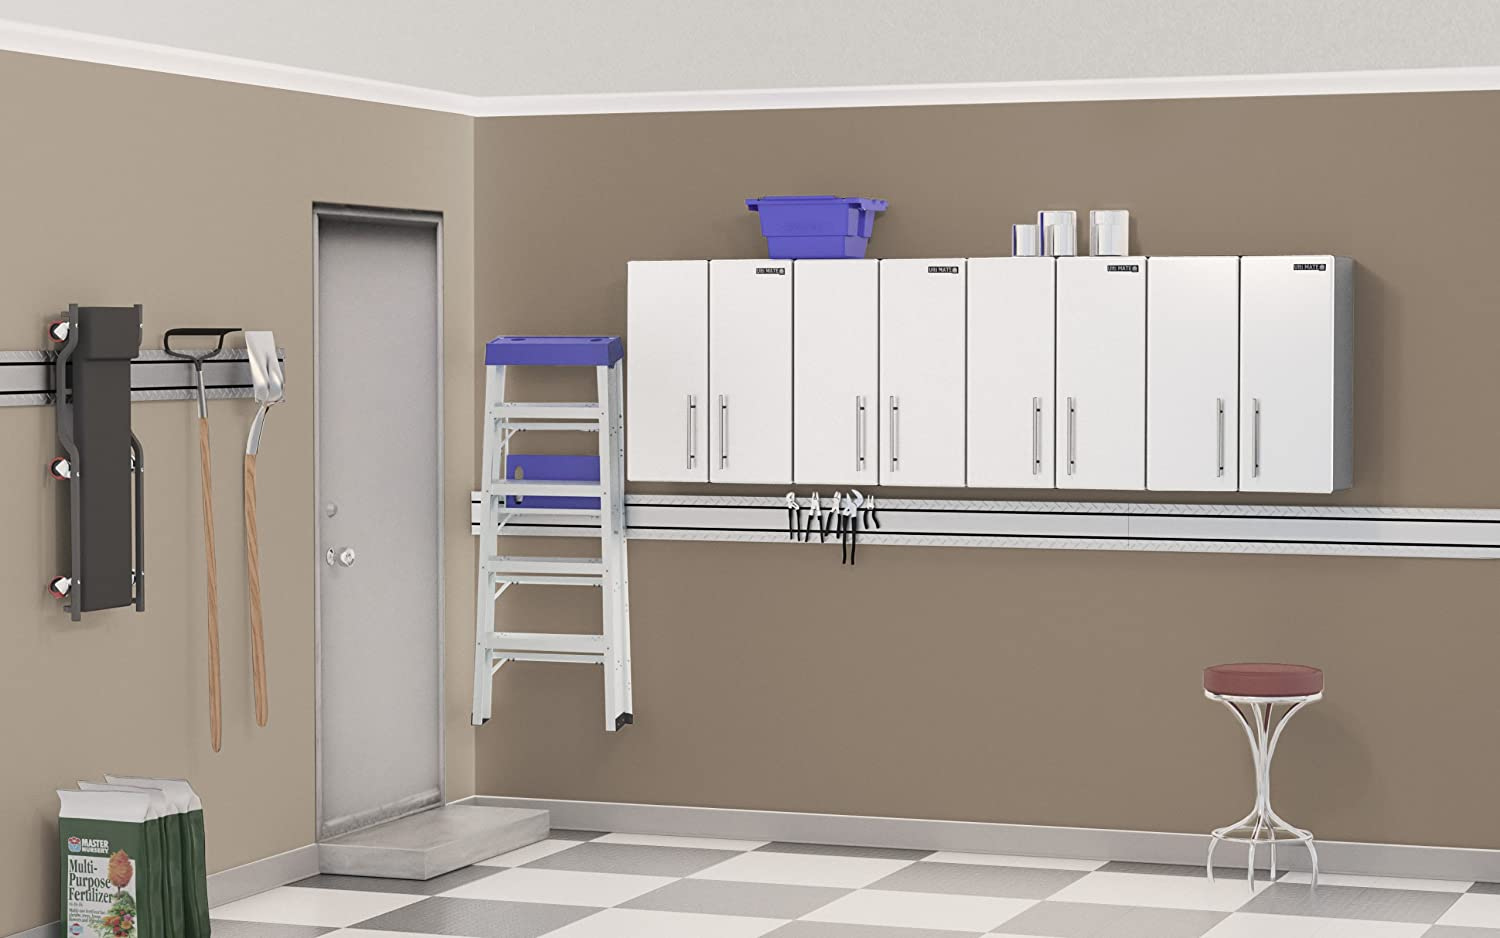 Ulti mate storage 4 piece wall cabinet kit garage storage and ulti mate storage 4 piece wall cabinet kit garage storage and organization systems amazon solutioingenieria Image collections